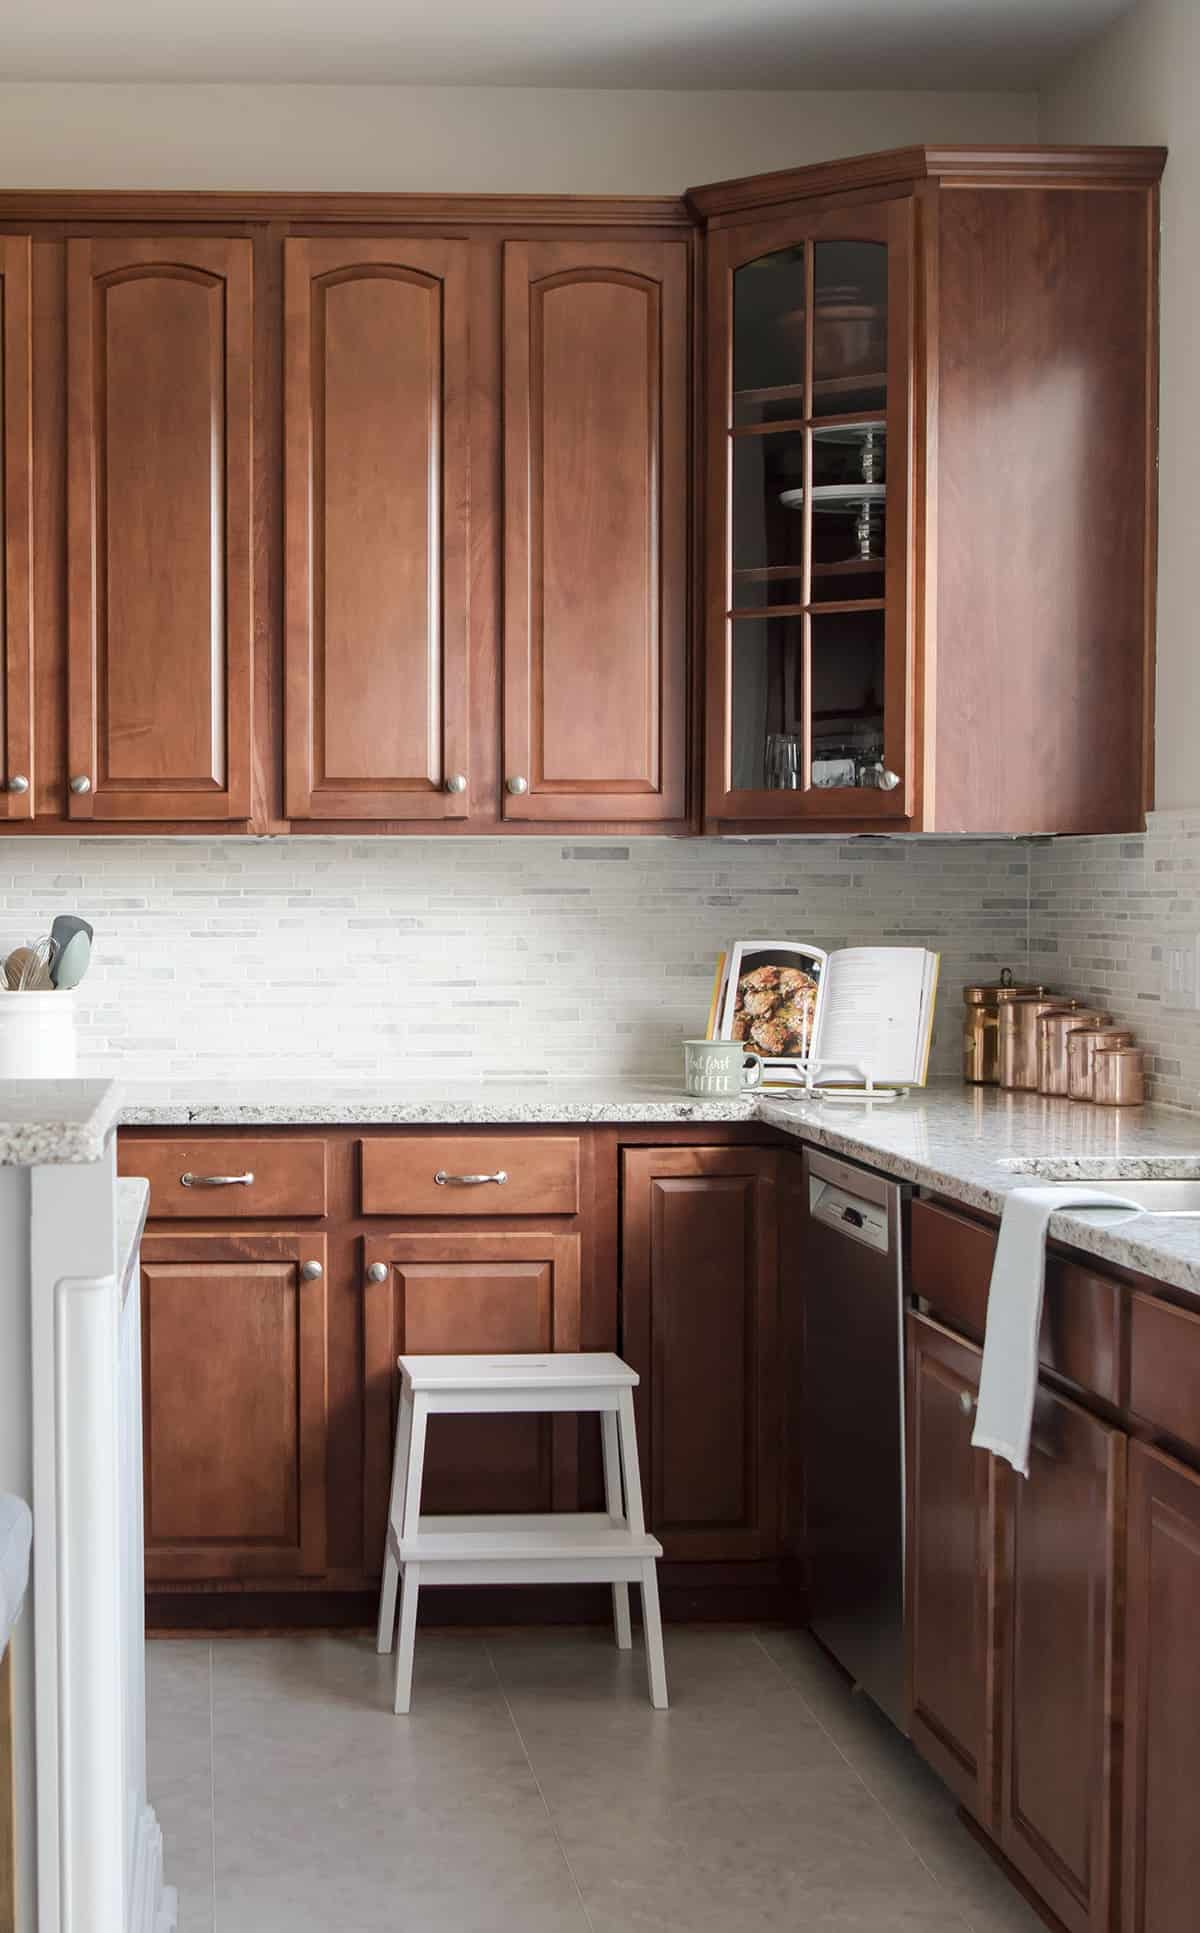 Dark wood cabinets in traditional kitchen with white and gray tile backsplash and light marble countertops.